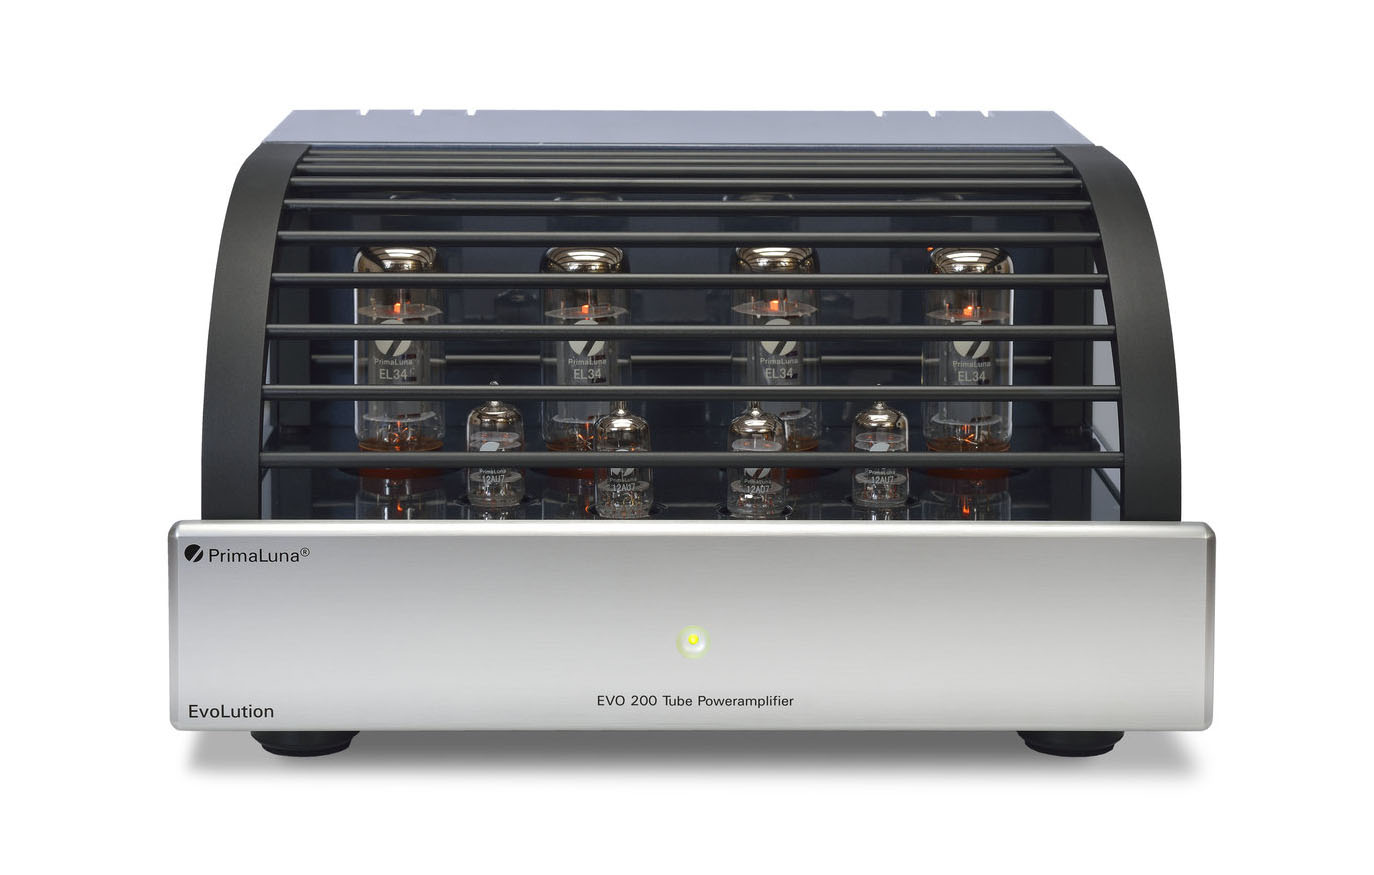 PrimaLuna EVO200 power amplifier